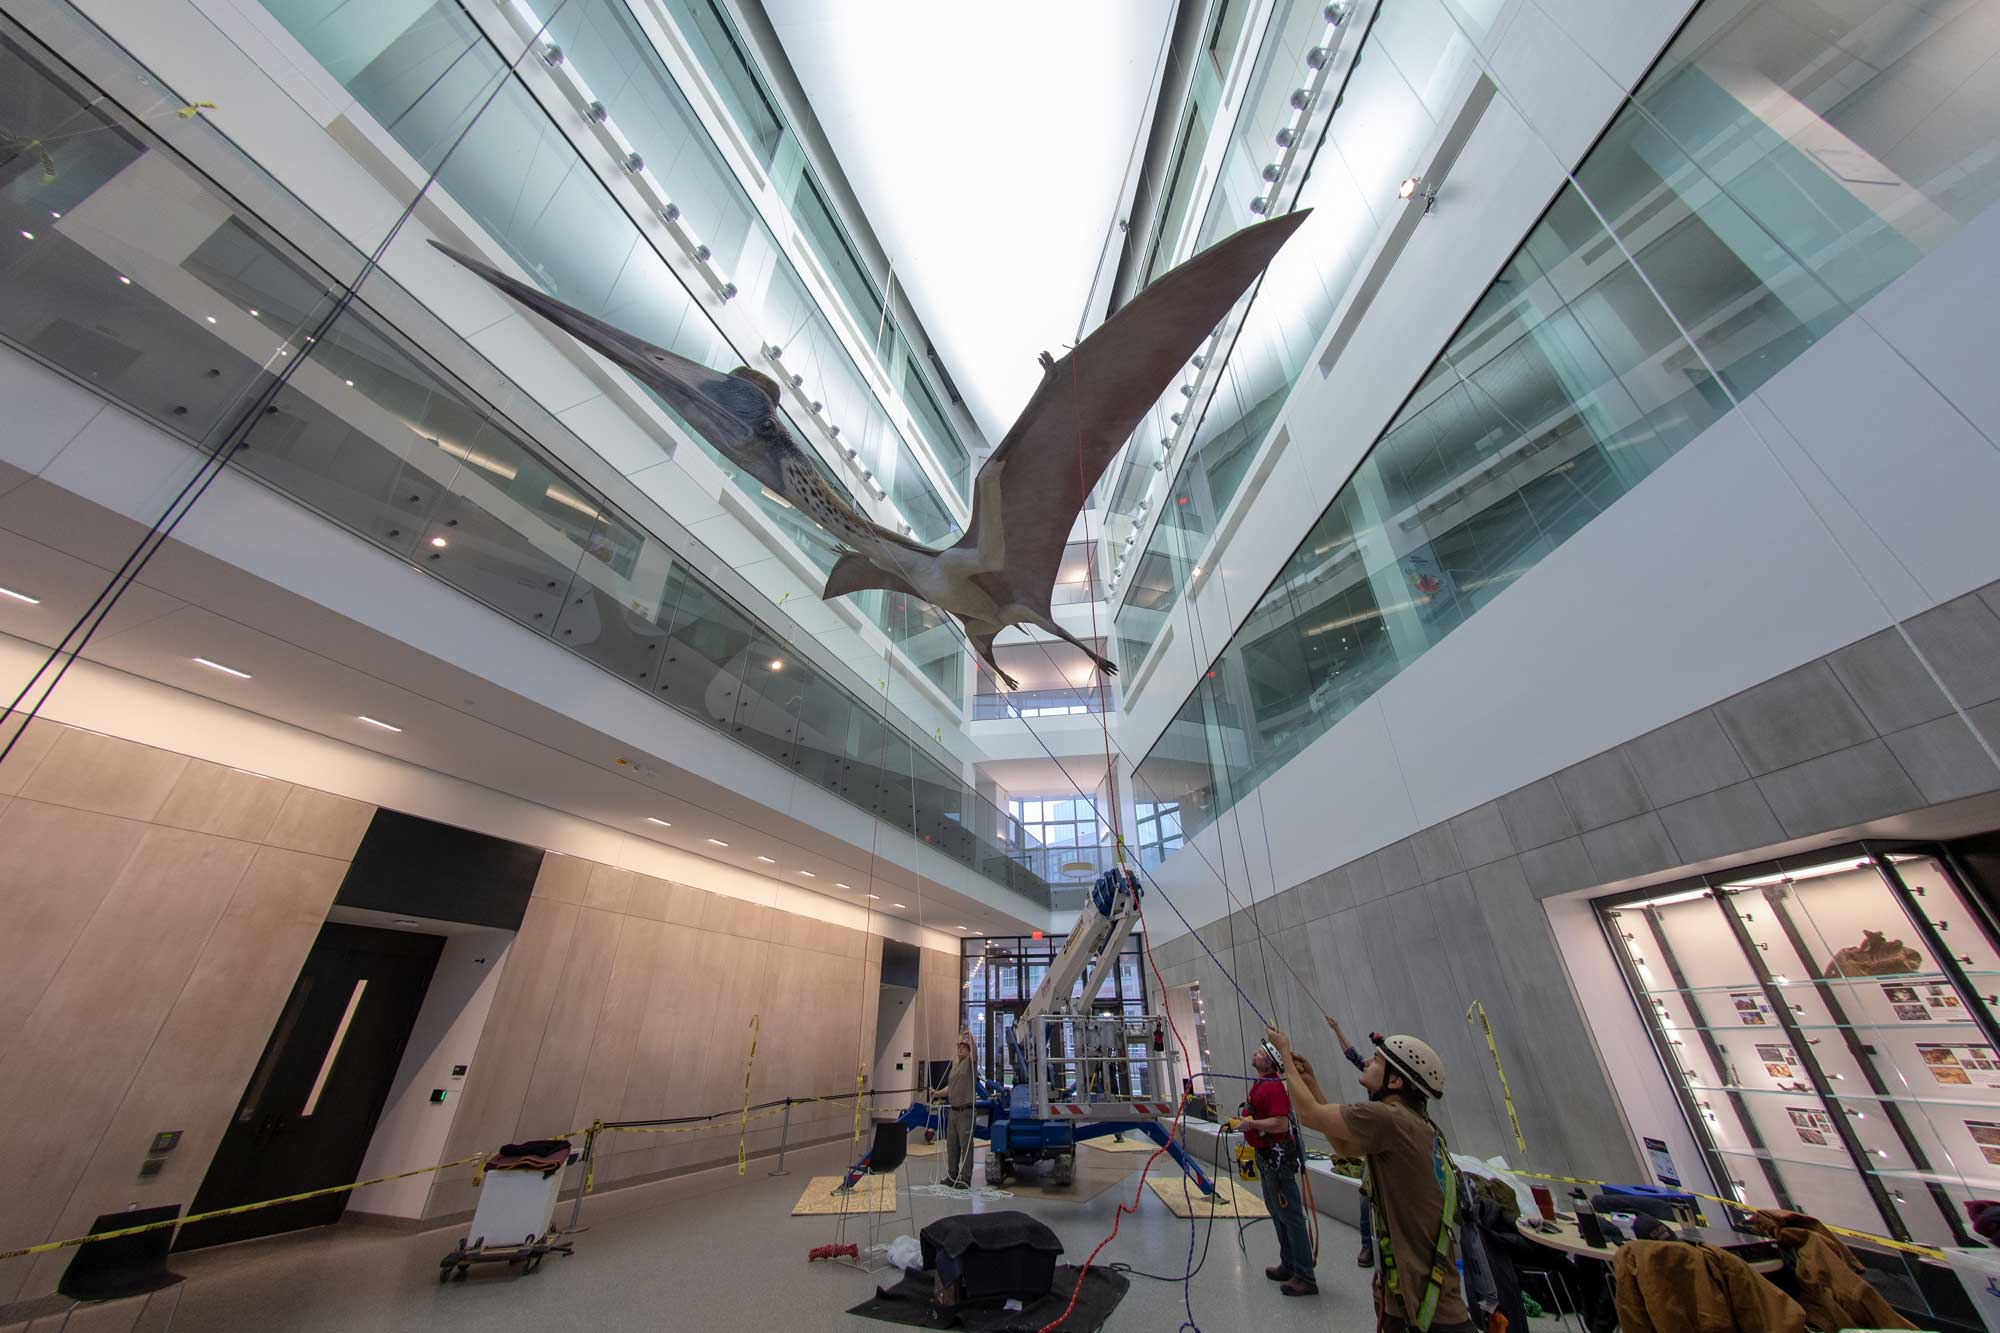 A life-size model of a prehistoric pterosaur is hoisted into place in a five-story atrium at the university's new Biological Sciences Building, the new home of the university's Museum of Natural History, which will reopen next spring. The creature, Quetzalcoatlus northropi, lived about 67 million years ago and was the largest known flying animal, with a 35-foot wingspan. The 700-pound model is a hand-painted fiberglass cast with an internal steel armature. Images credit: Roger Hart, Michigan Photography